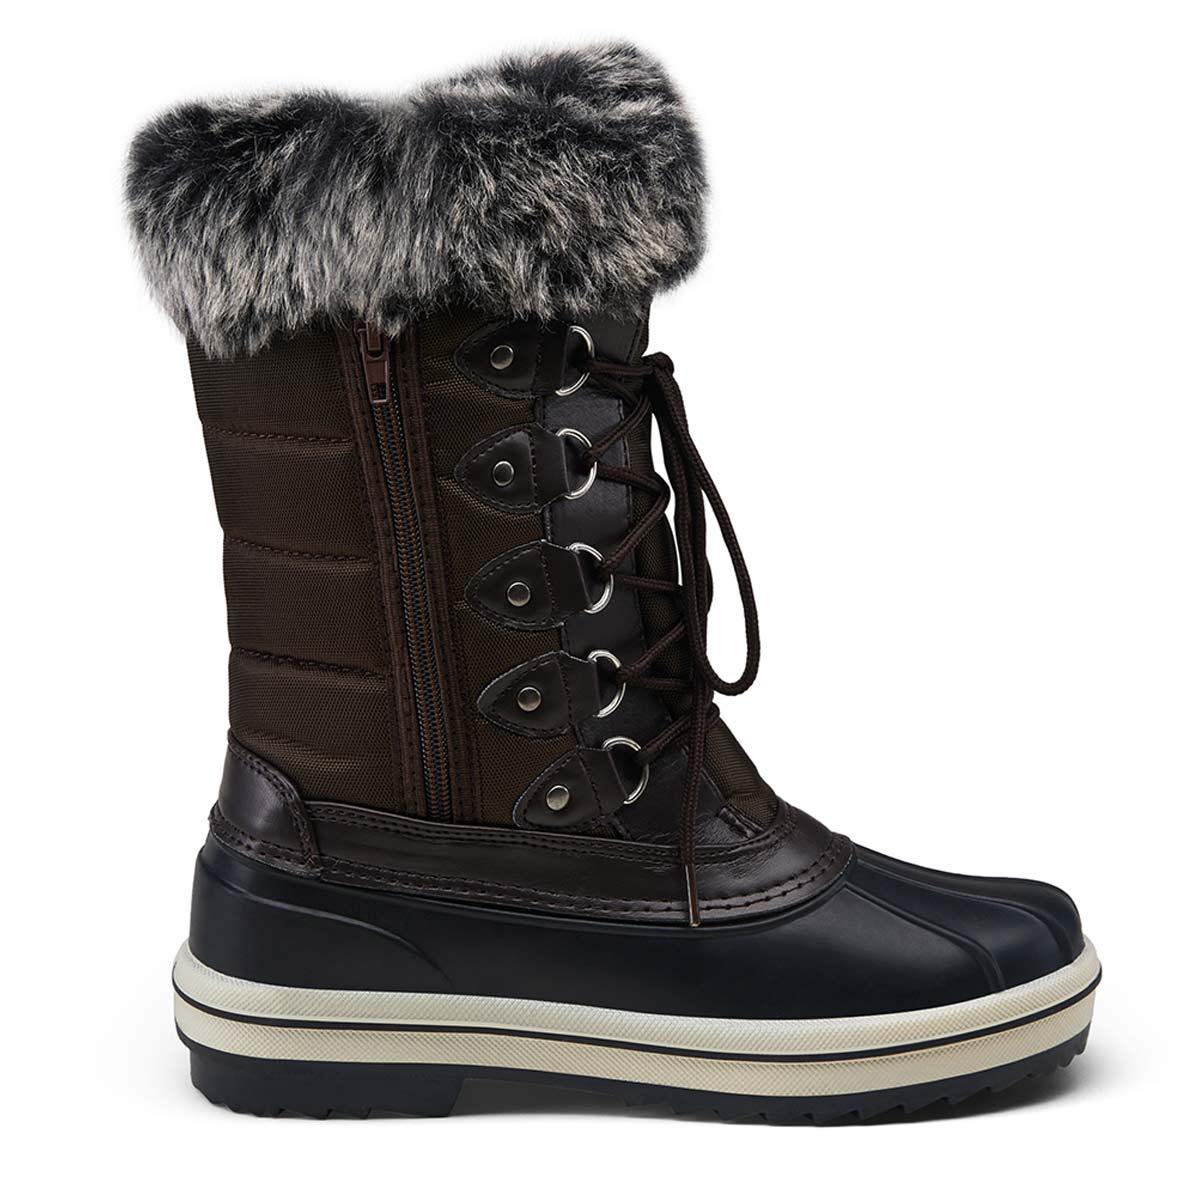 Waterproof Snow Women Boots Mid Calf | Vepose - Top shoes club